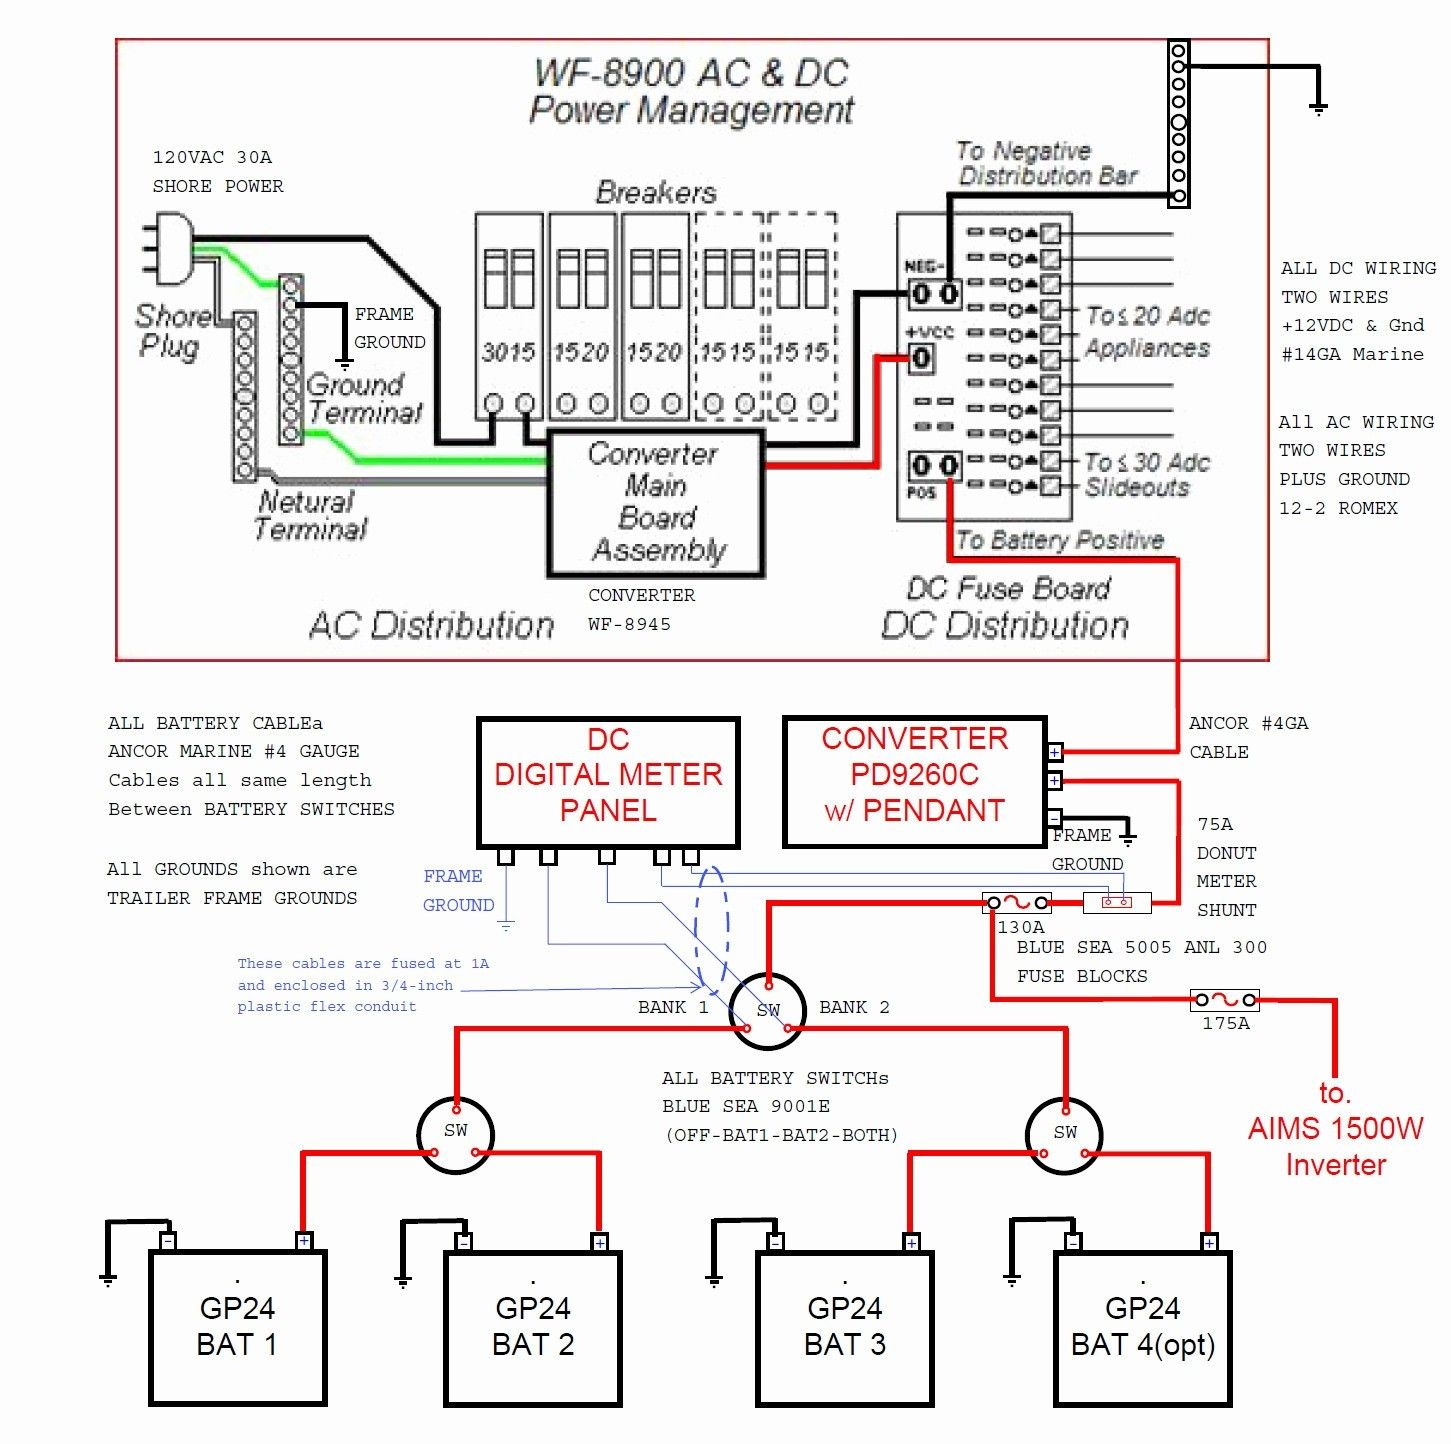 30 Amp Rv Plug Wiring Diagram Inspirational Wiring Diagram for Rv Inverter  Best 50 Amp Wiring Diag… | Trailer wiring diagram, Electrical wiring diagram,  Car trailerPinterest